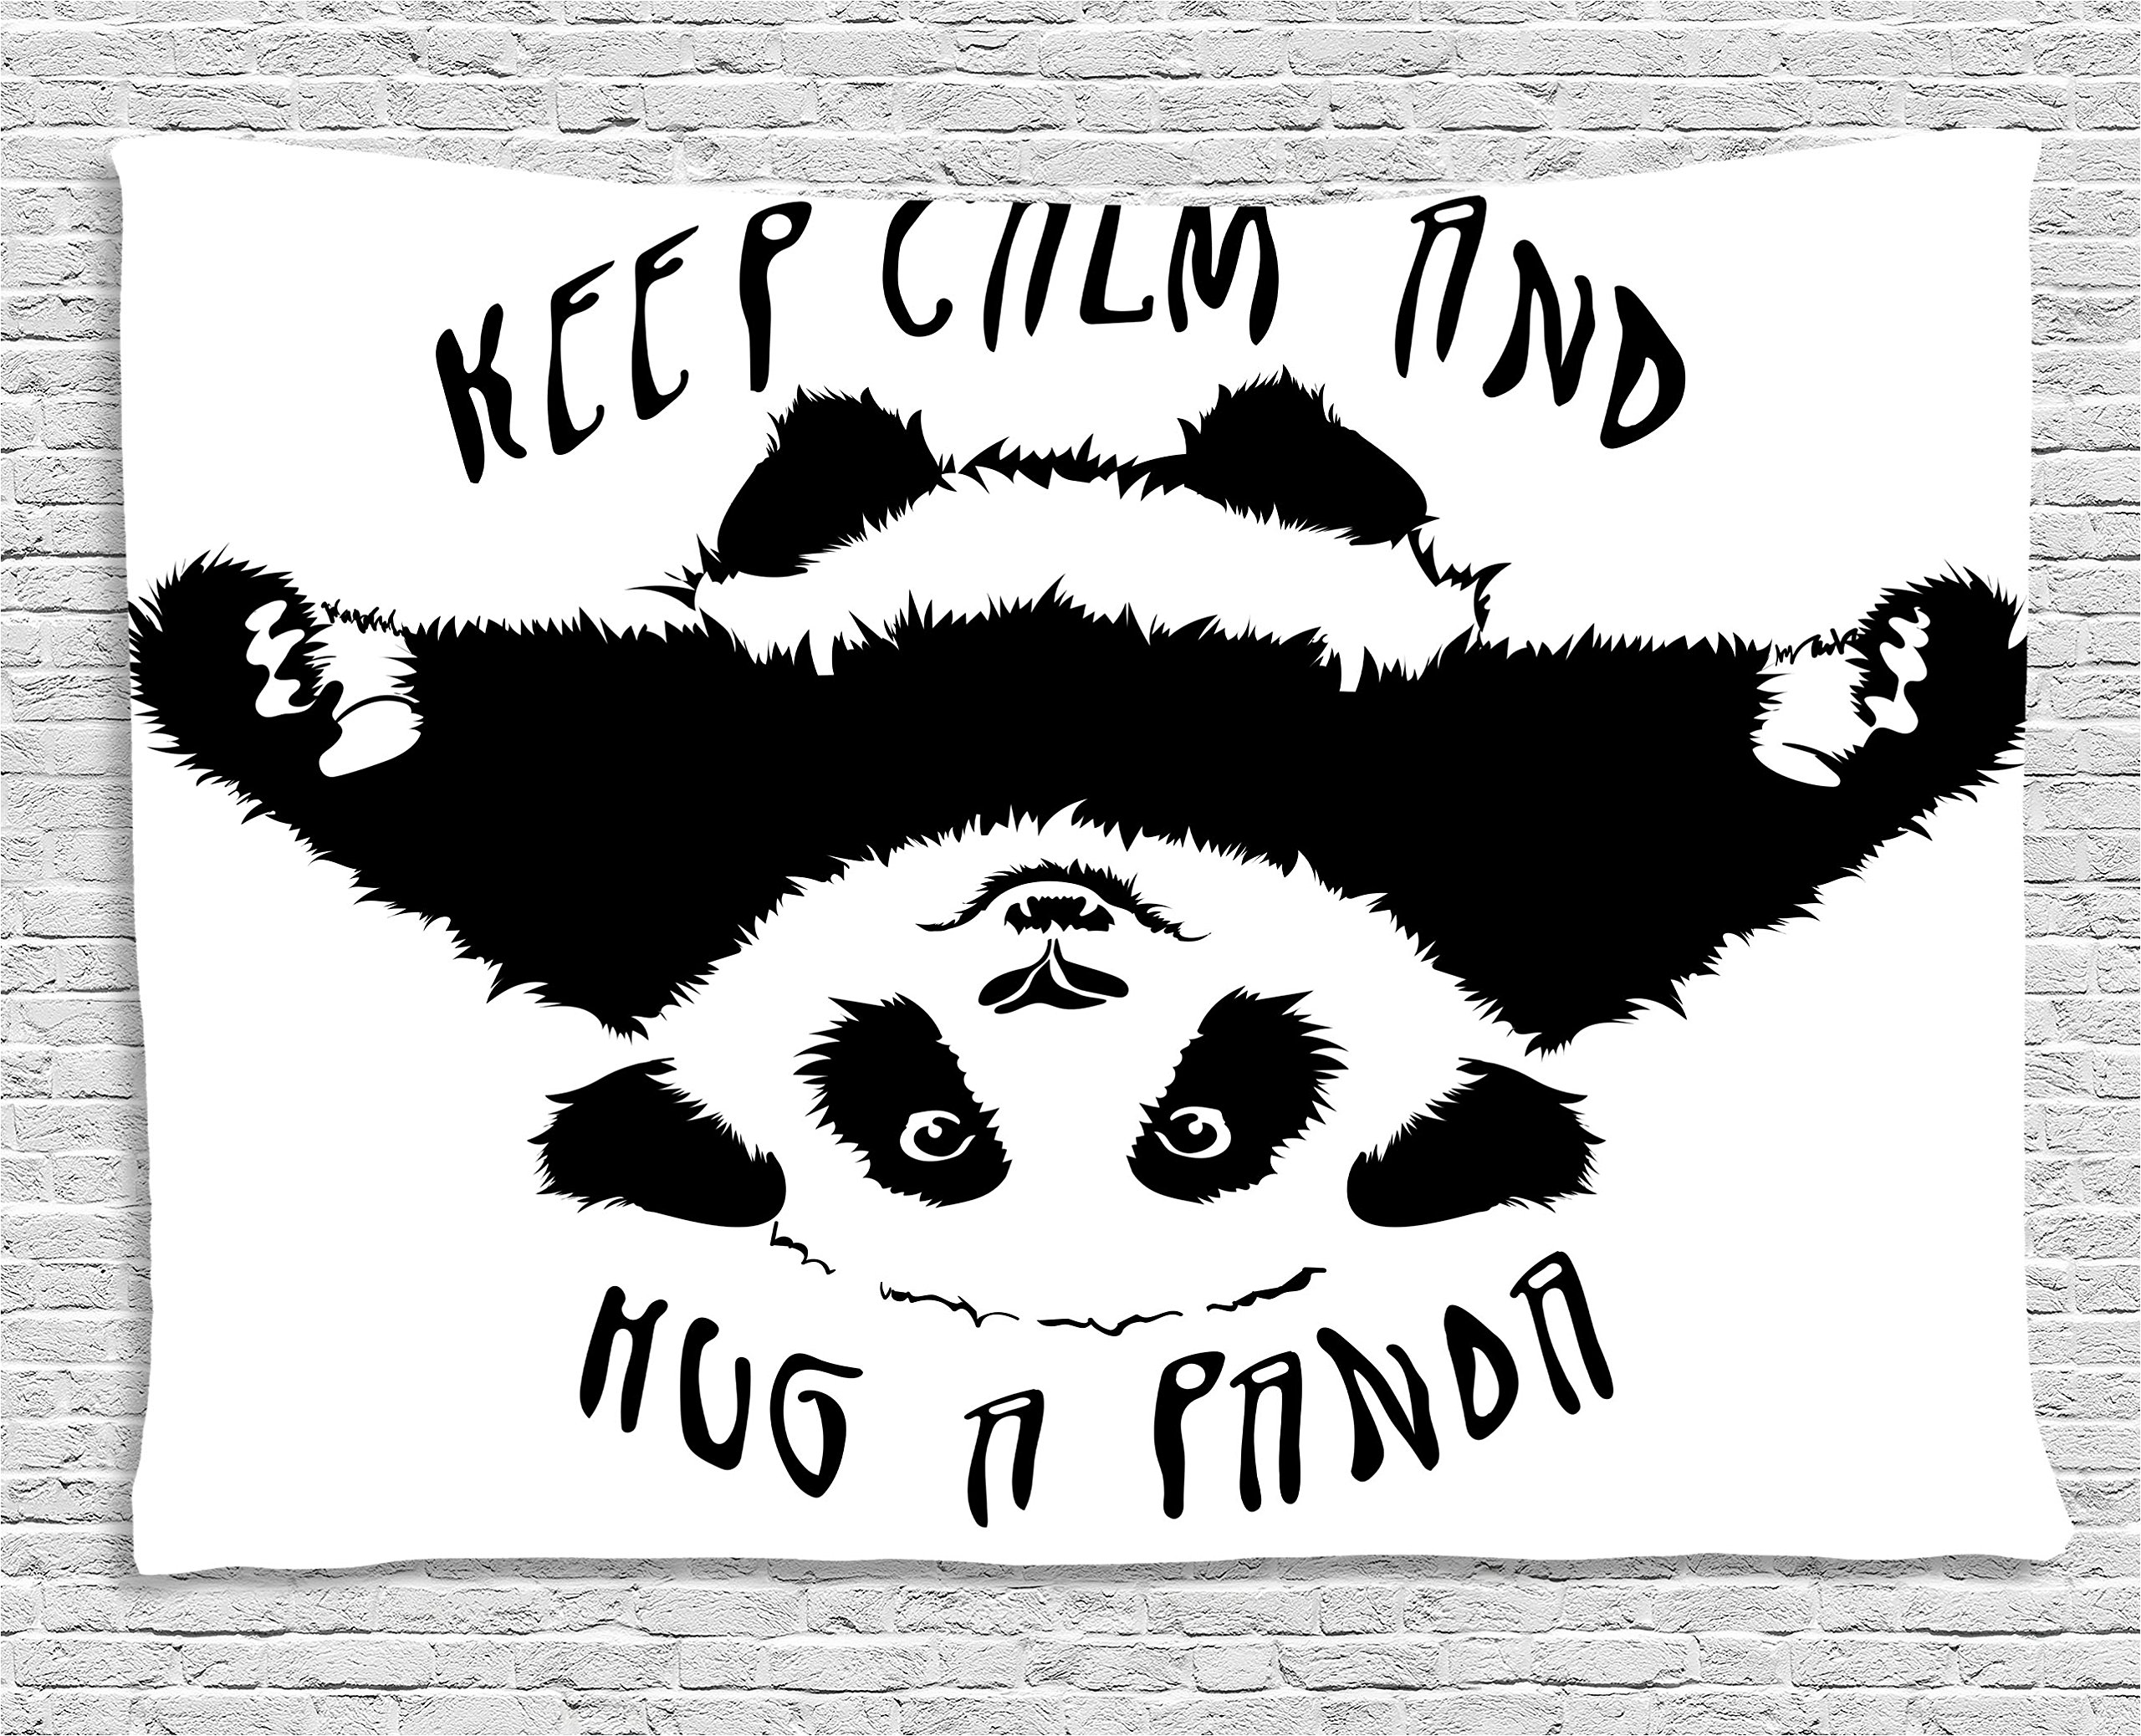 Ambesonne Black and White Tapestry Decor, Funny Animal Mascot Keep Calm and Hug a Panda Motivational Quote, Wall Hanging for Bedroom Living Room Dorm, 80 W X 60 L Inches, Black White by Ambesonne (Image #1)